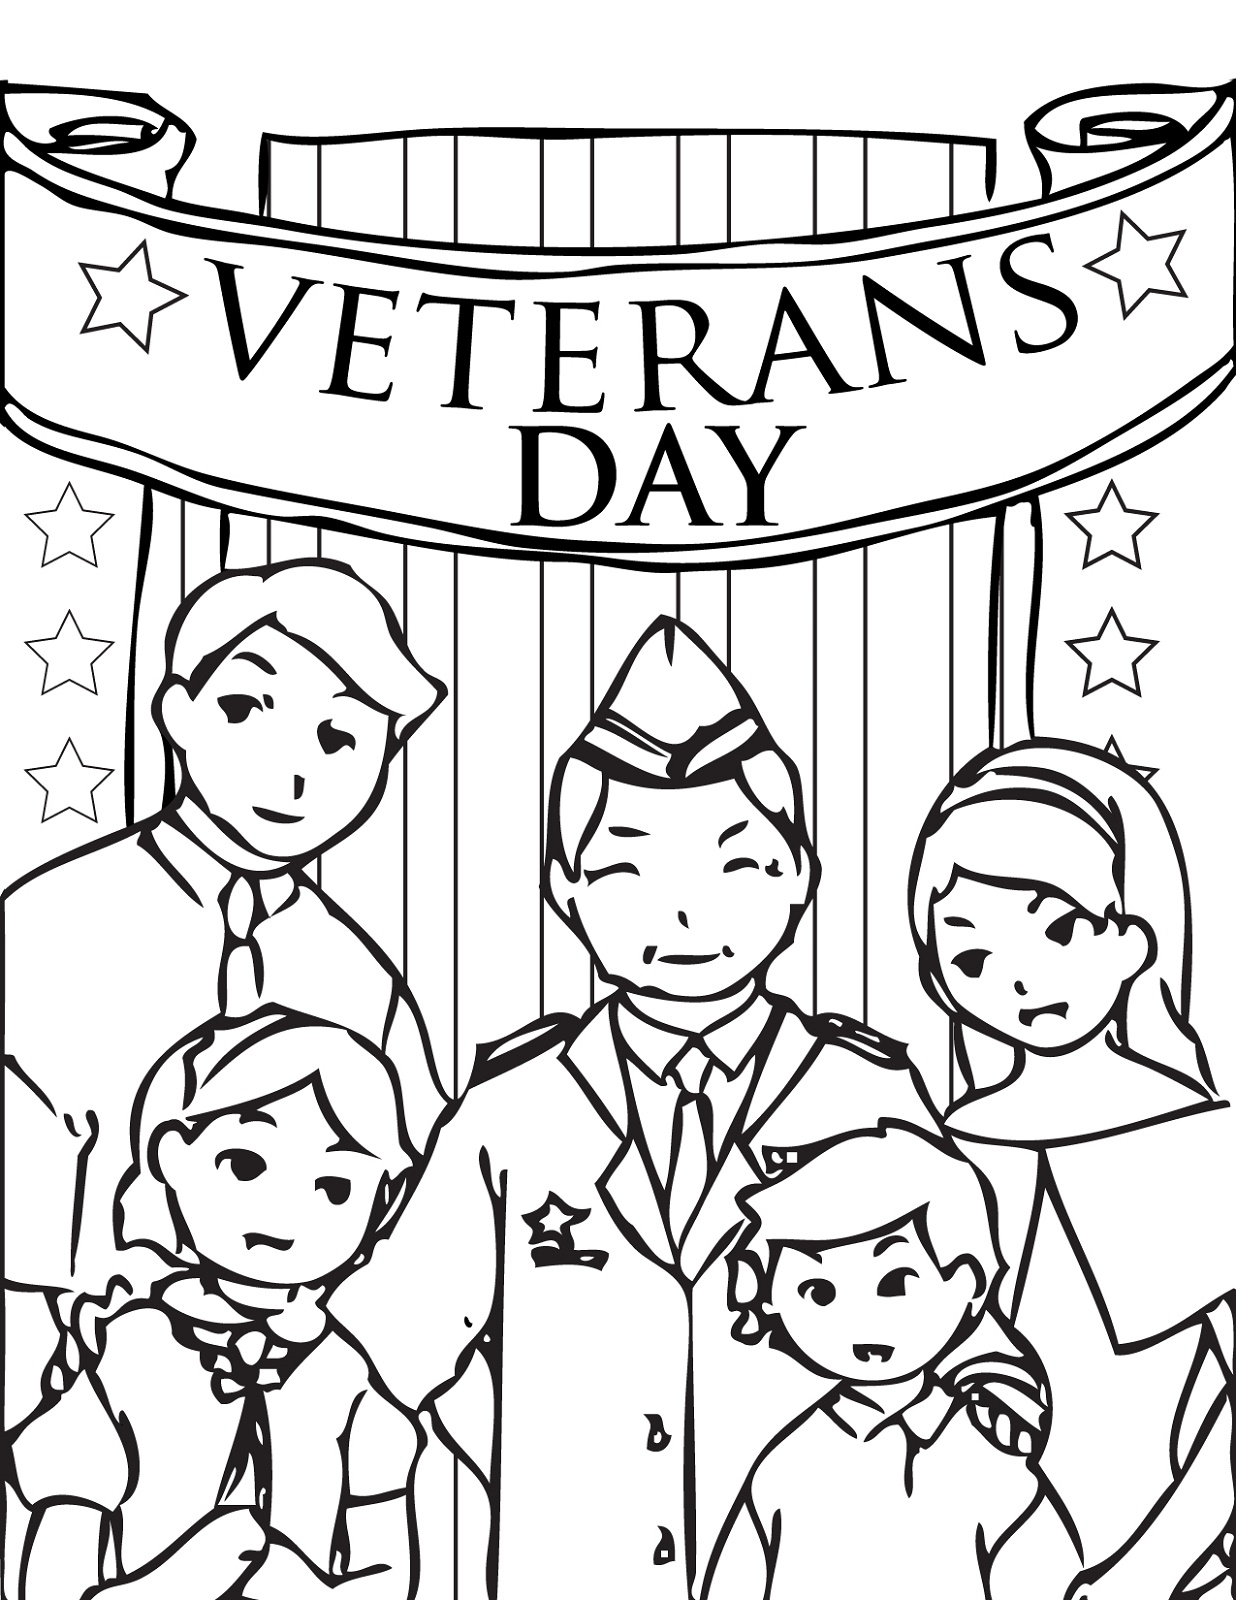 Veterans Day Coloring Pages To Print